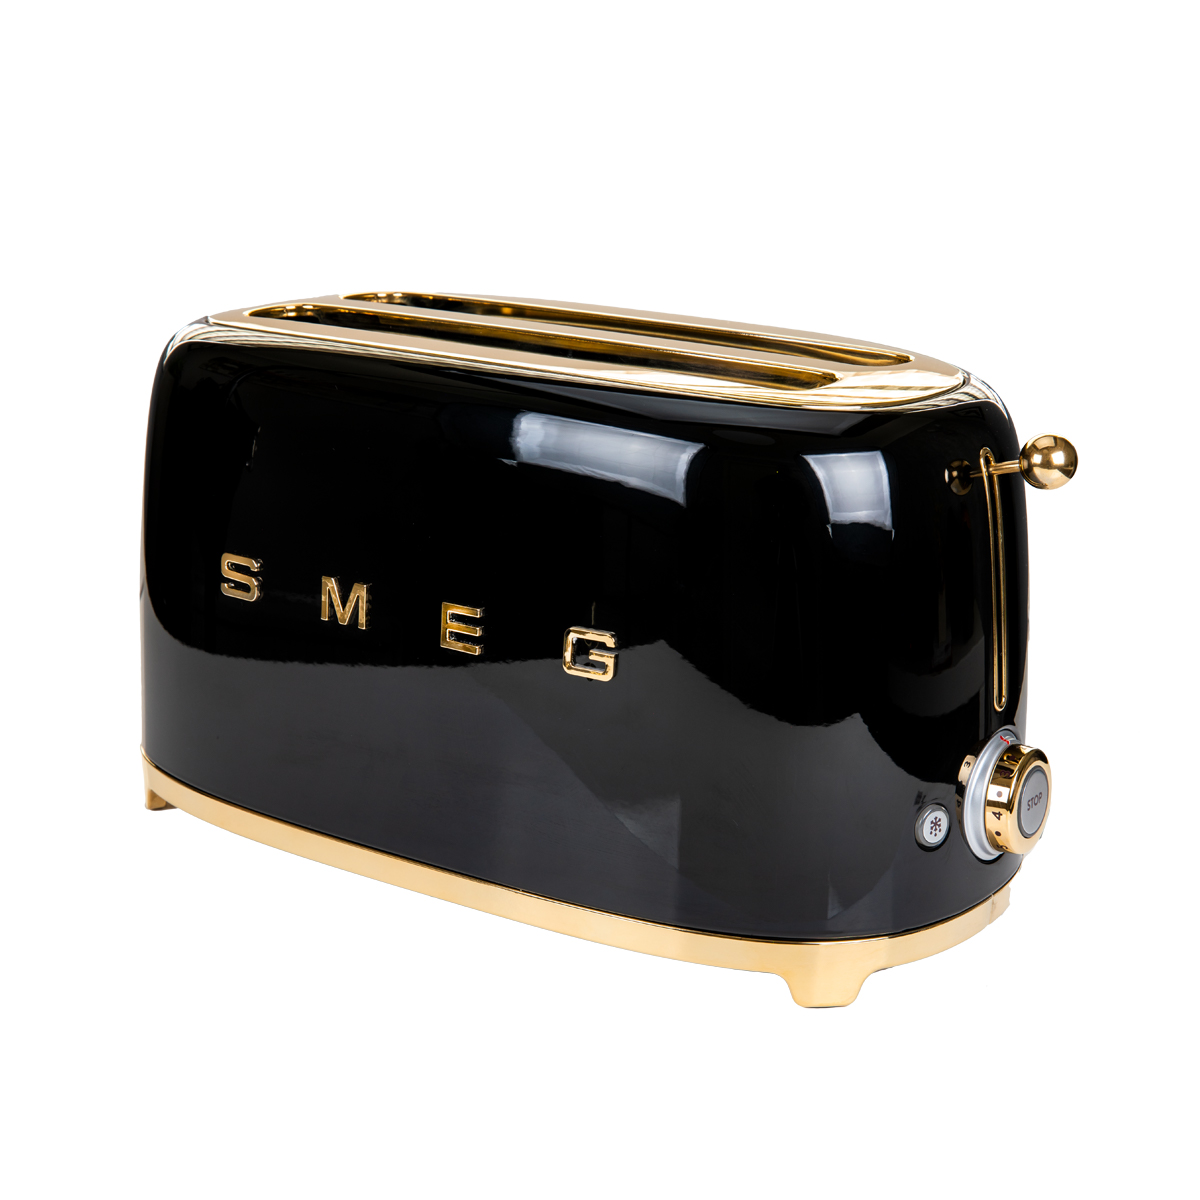 Elite Luxury SMEG Toaster